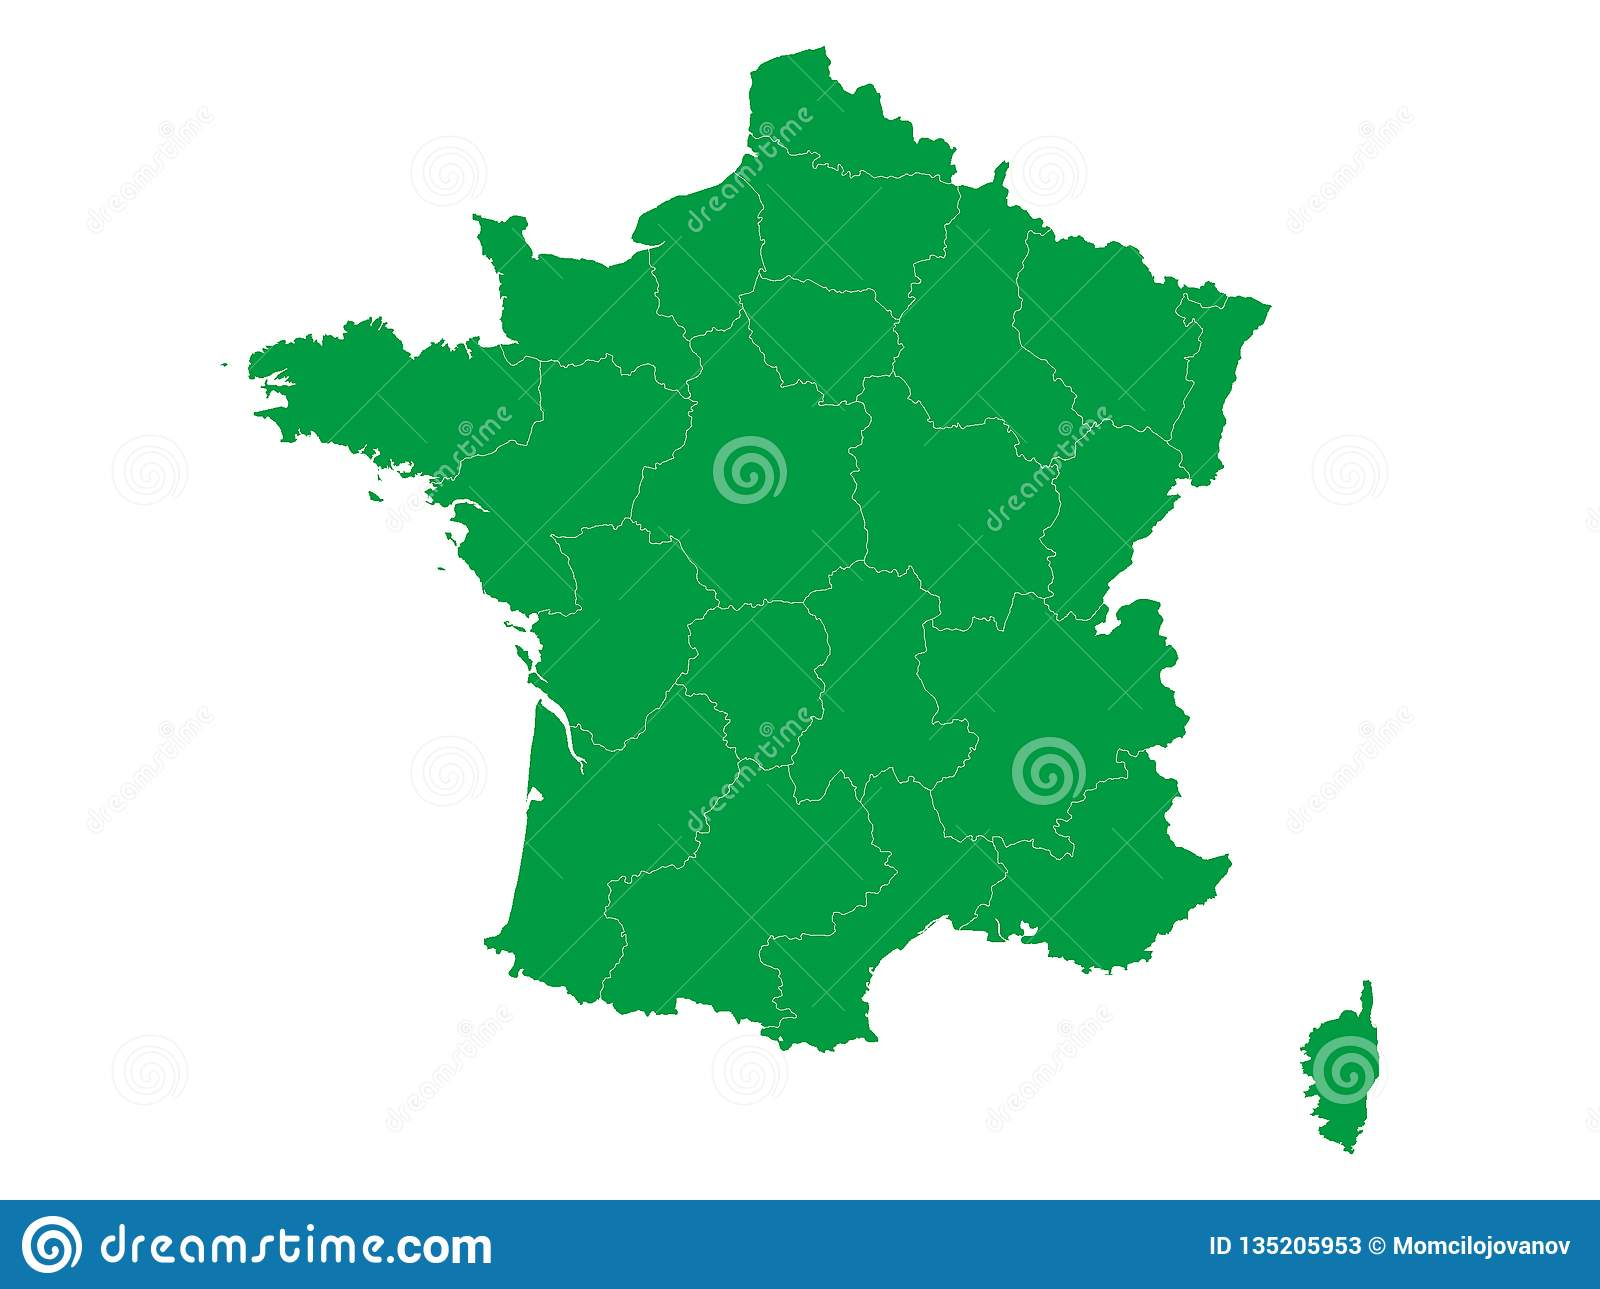 Map Of Provinces In France.Map Of France With Provinces Stock Vector Illustration Of